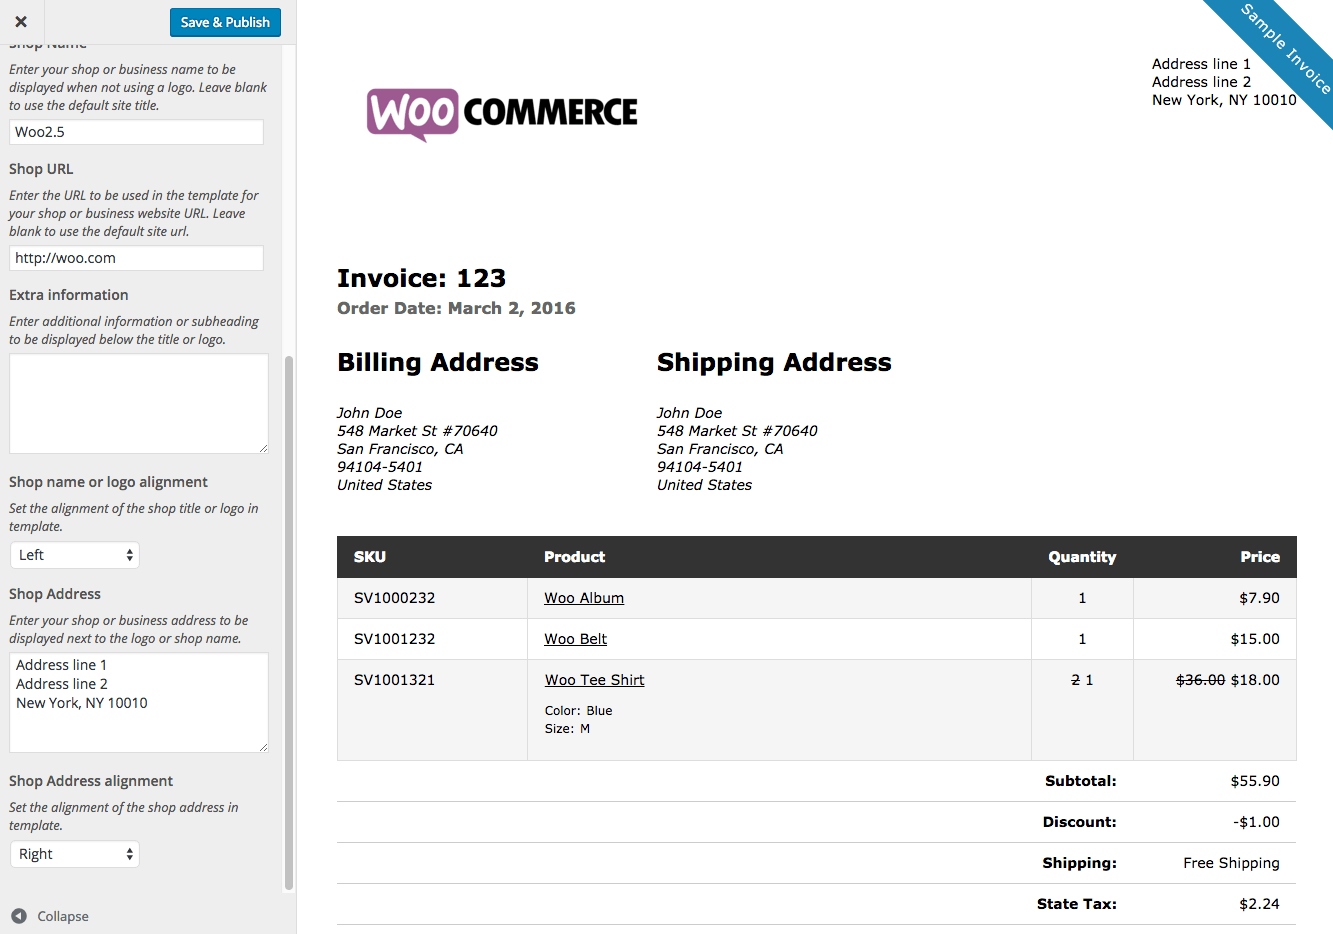 Atvingus  Splendid Woocommerce Print Invoices Amp Packing Lists  Woocommerce Docs With Remarkable Woocommerce Print Invoices  Packing Lists Customizer With Enchanting Ups Invoices Also Custom Business Invoices In Addition How To Find Out Dealer Invoice Price And Vendor Invoice Definition As Well As International Commercial Invoice Template Additionally Pay Toll By Plate Invoice From Docswoocommercecom With Atvingus  Remarkable Woocommerce Print Invoices Amp Packing Lists  Woocommerce Docs With Enchanting Woocommerce Print Invoices  Packing Lists Customizer And Splendid Ups Invoices Also Custom Business Invoices In Addition How To Find Out Dealer Invoice Price From Docswoocommercecom